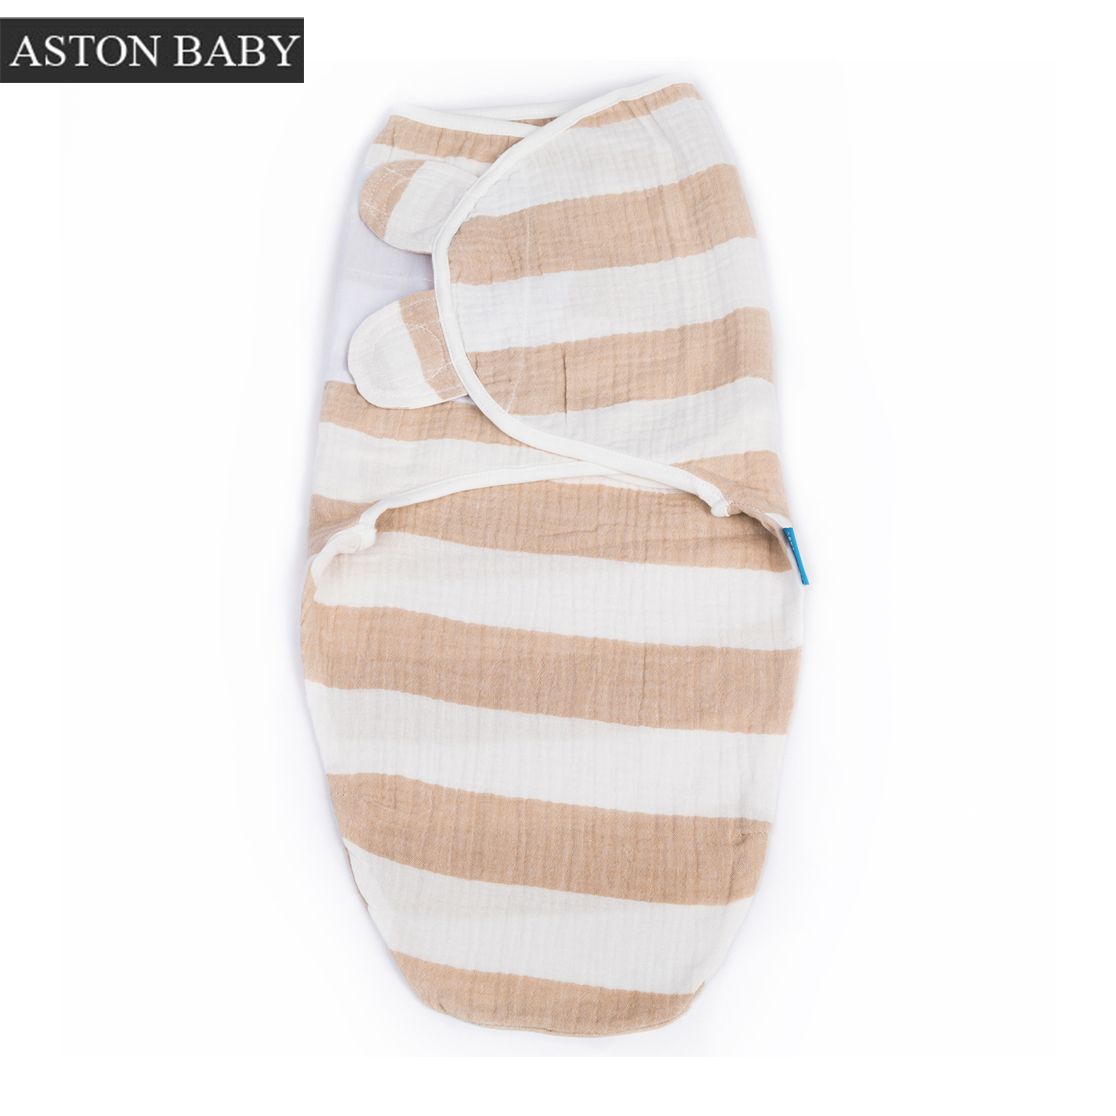 100% Cotton Prewashed Muslin Print 0.5 Tog Baby Swaddle Bag